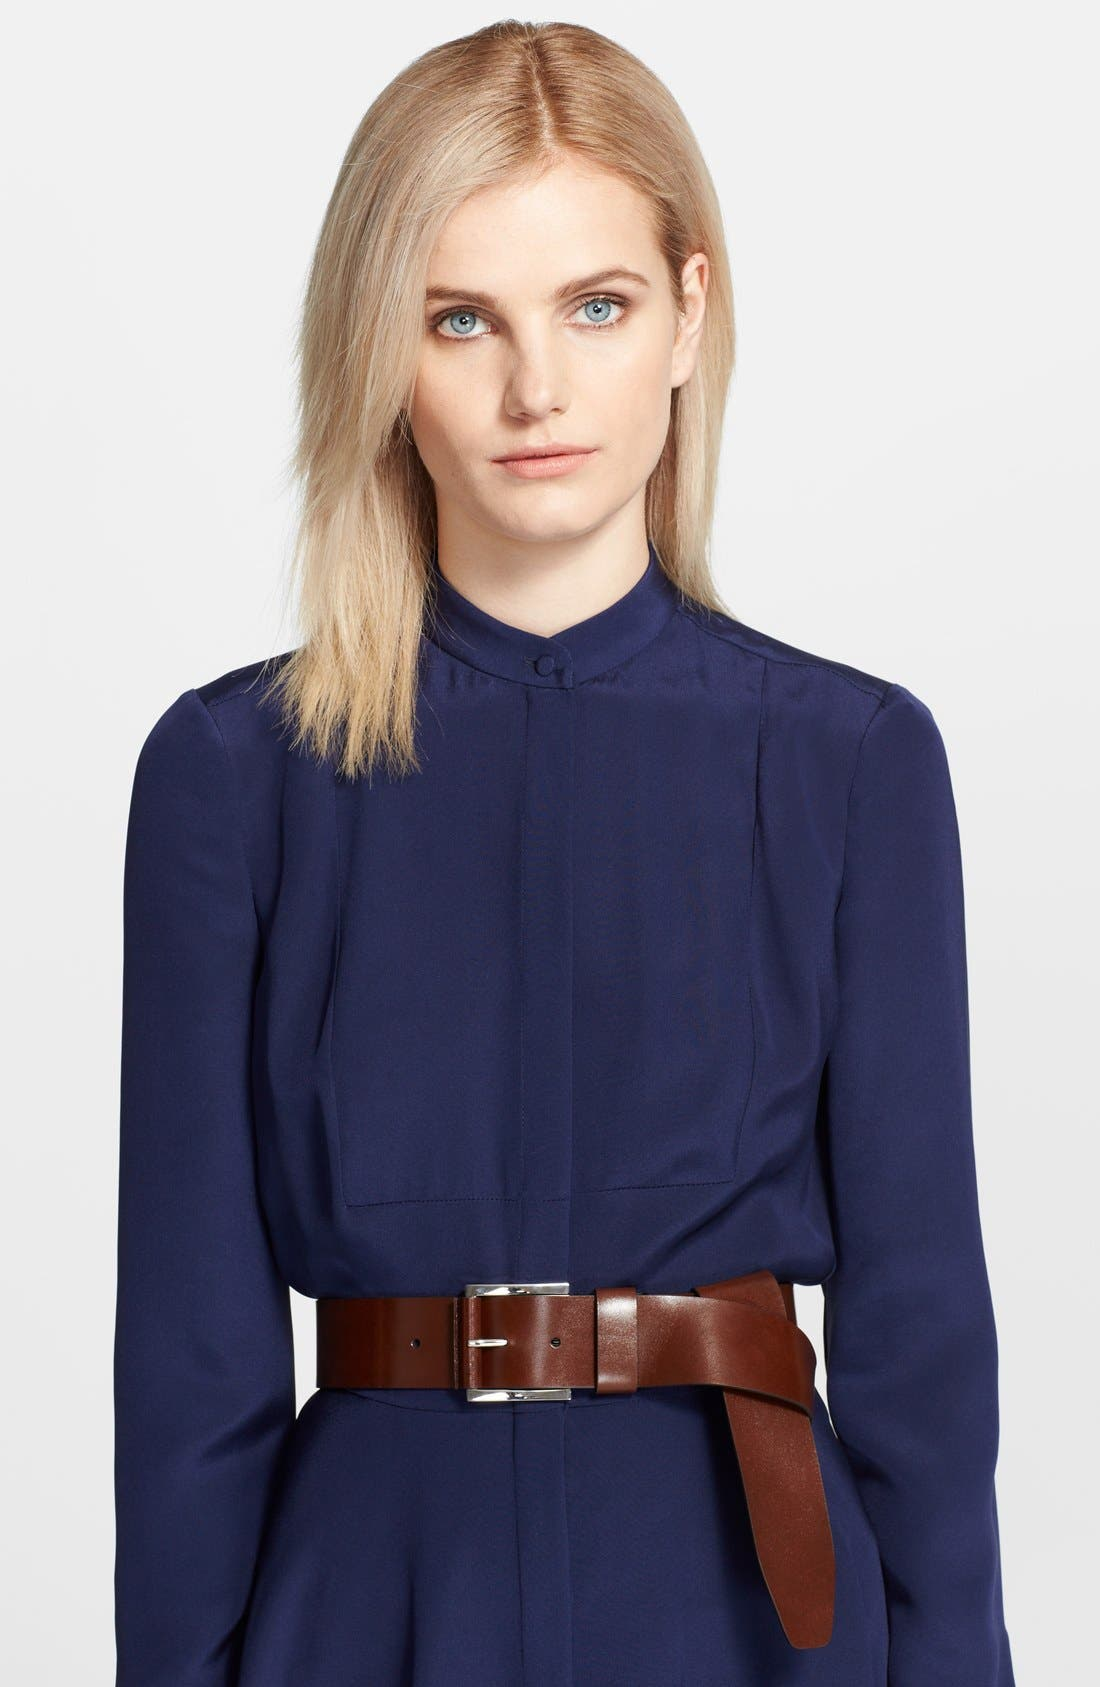 Main Image - Michael Kors Flip Tie Leather Belt